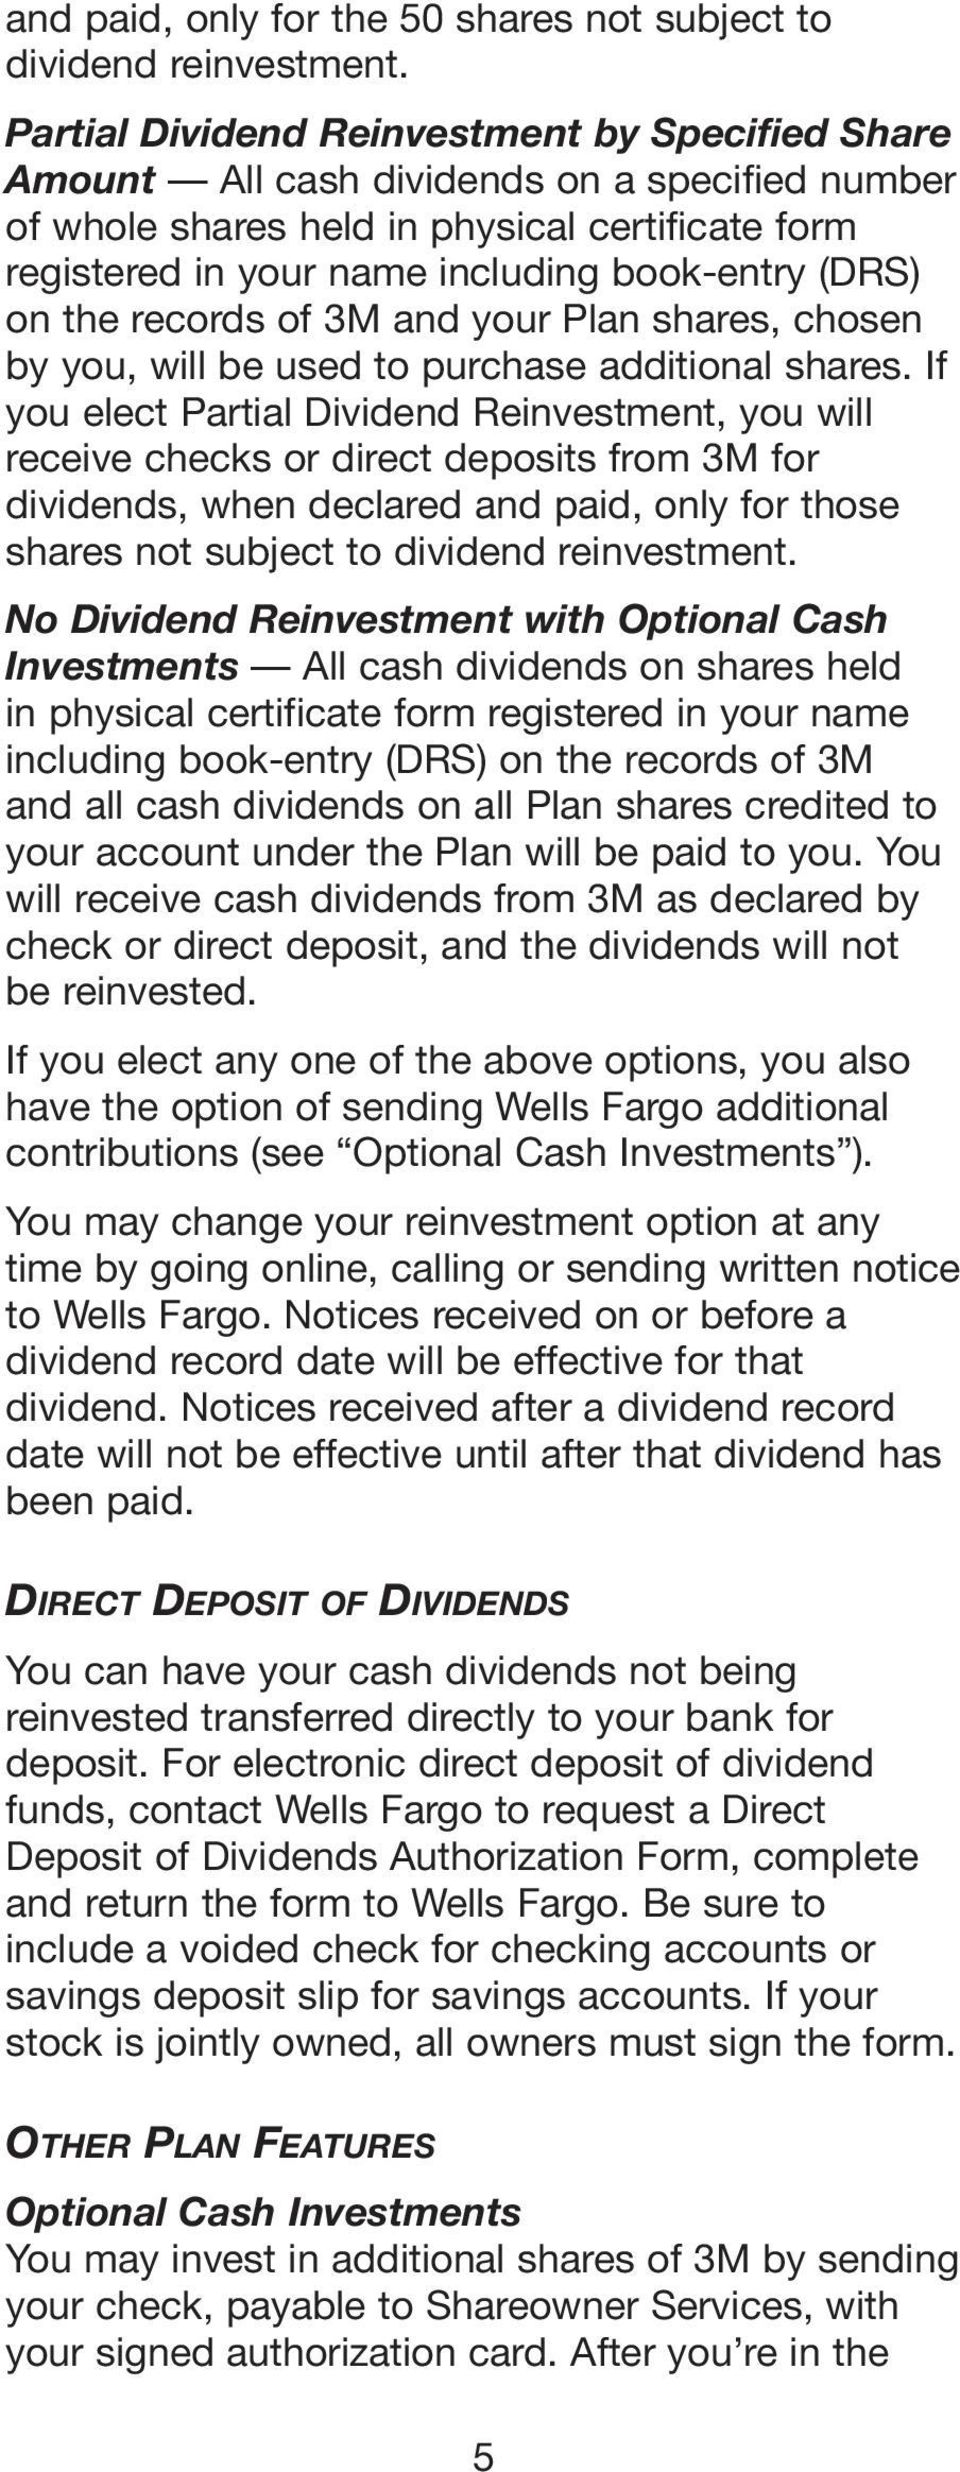 on the records of 3M and your Plan shares, chosen by you, will be used to purchase additional shares.